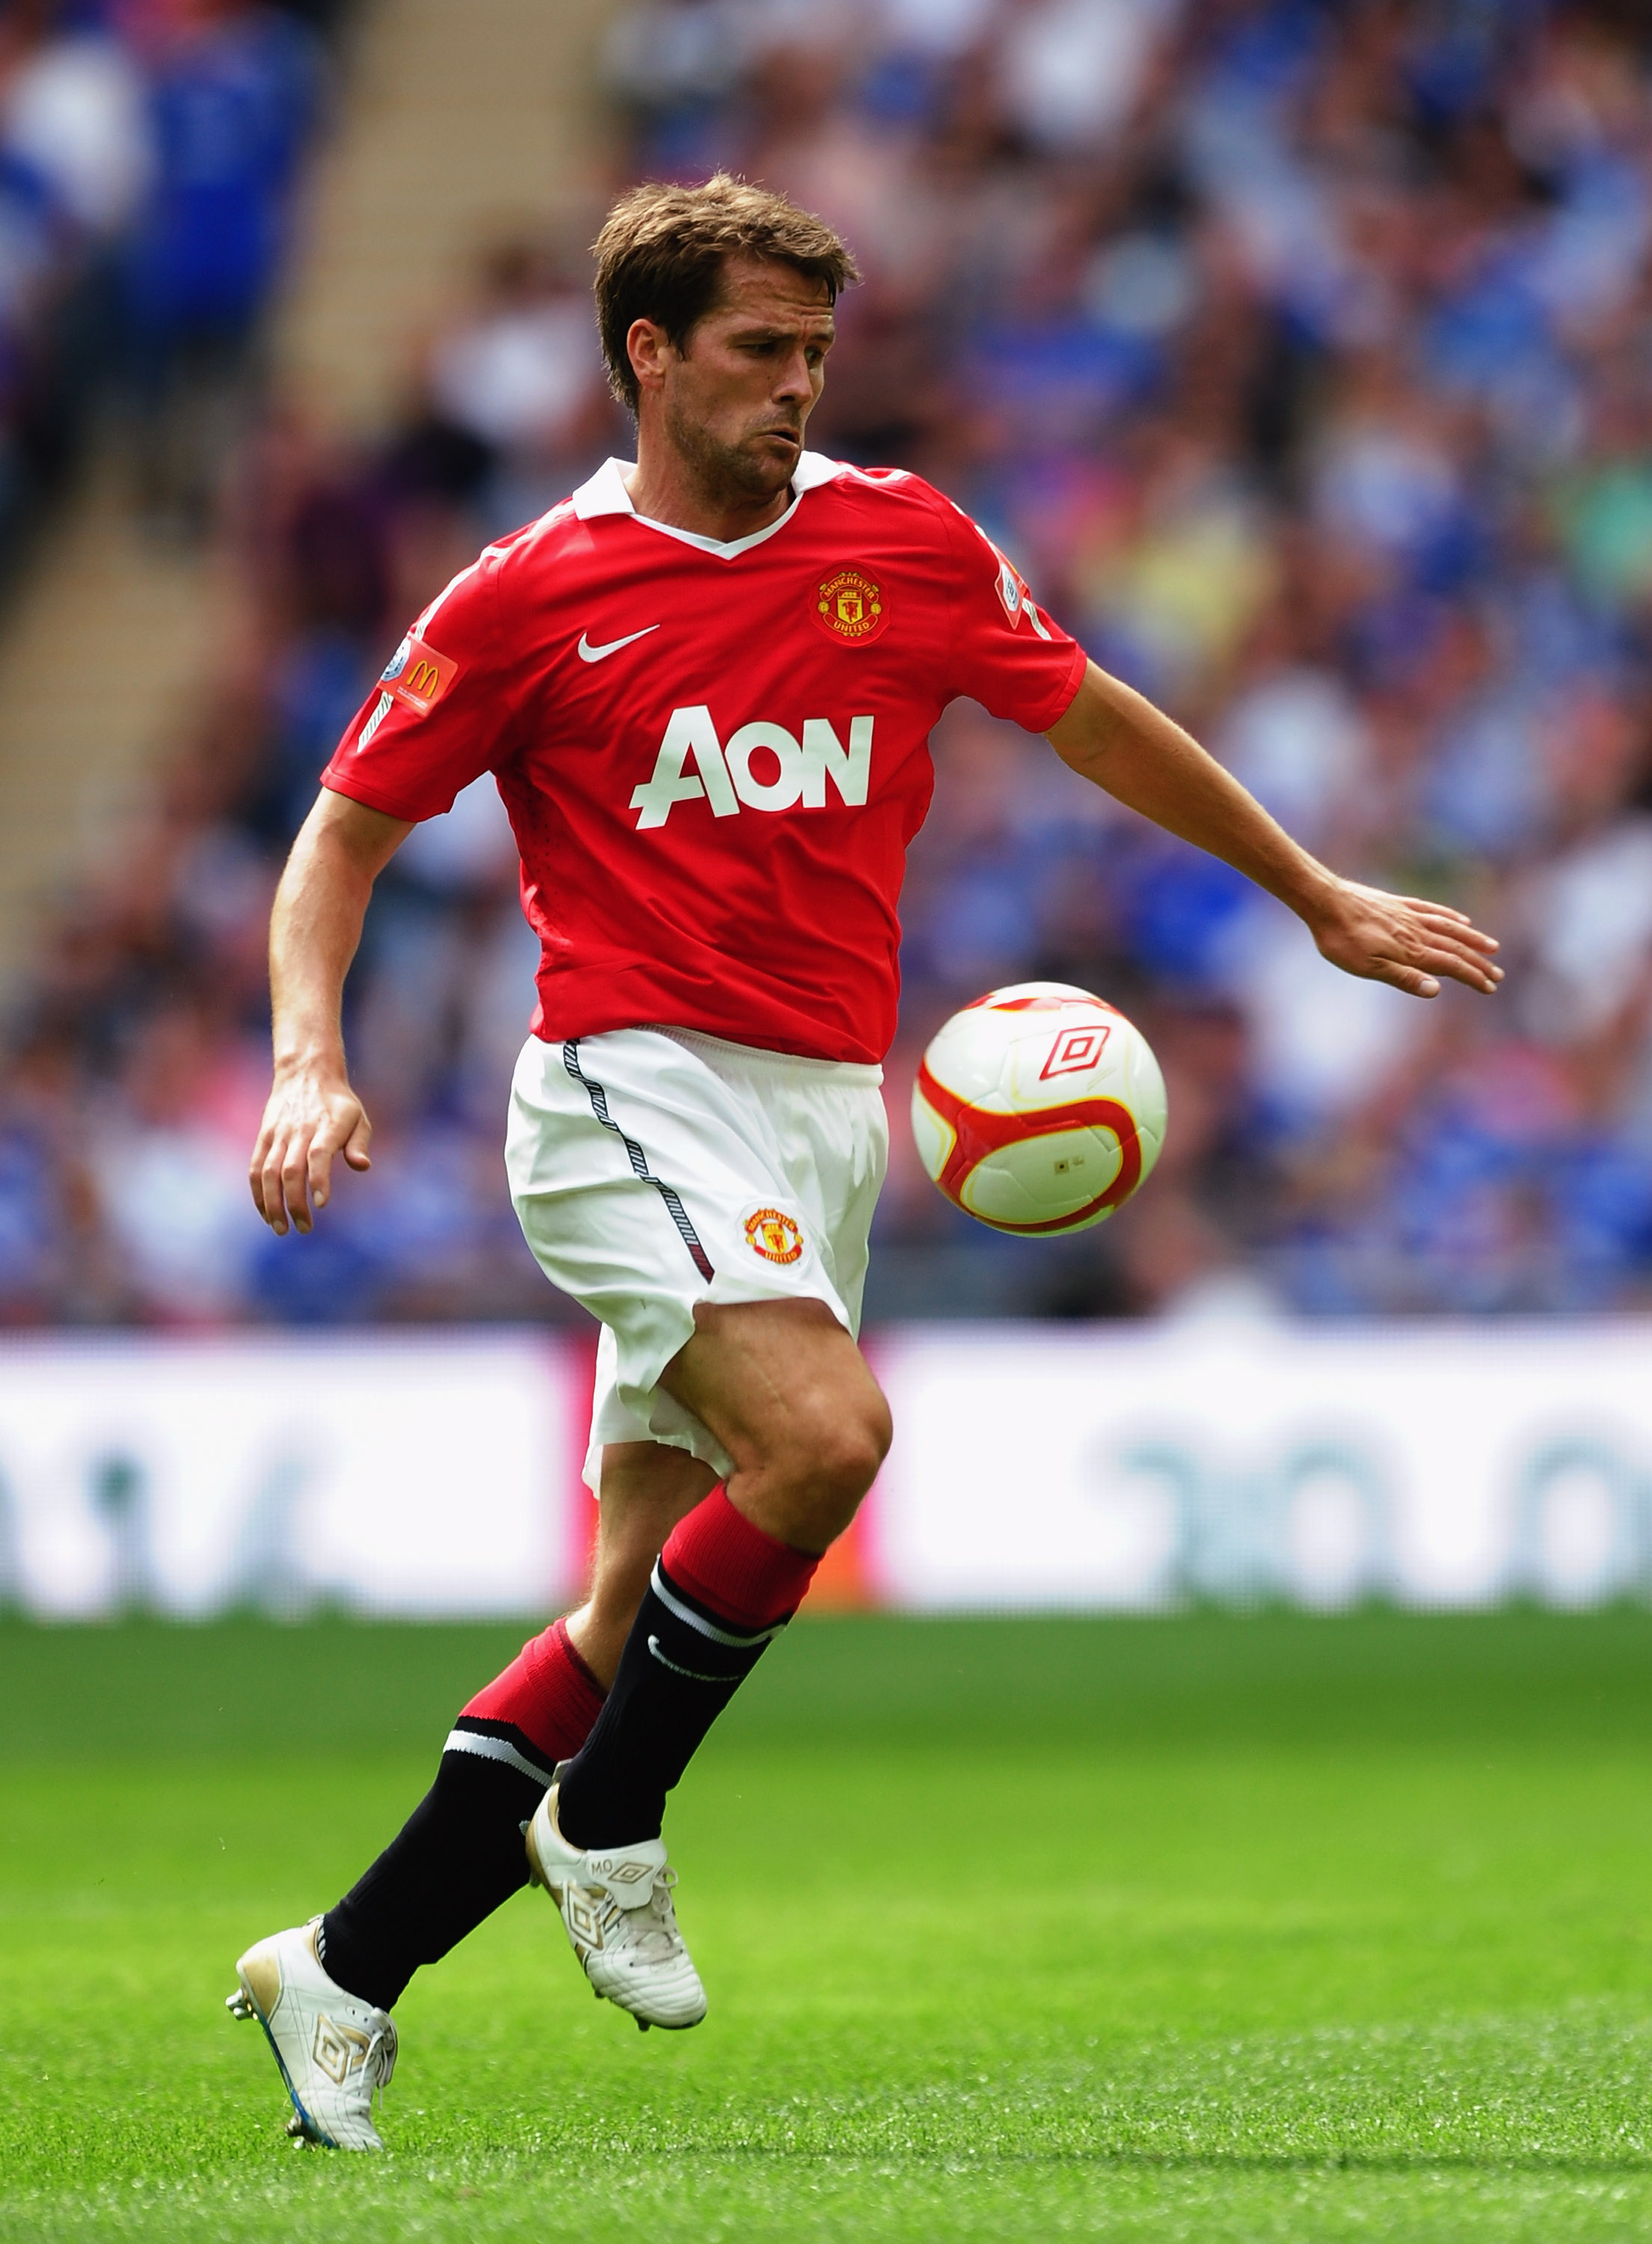 LONDON, ENGLAND - AUGUST 08:  Michael Owen of Manchester United in action during the FA Community Shield match between Chelsea and Manchester United at Wembley Stadium on August 8, 2010 in London, England.  (Photo by Laurence Griffiths/Getty Images)